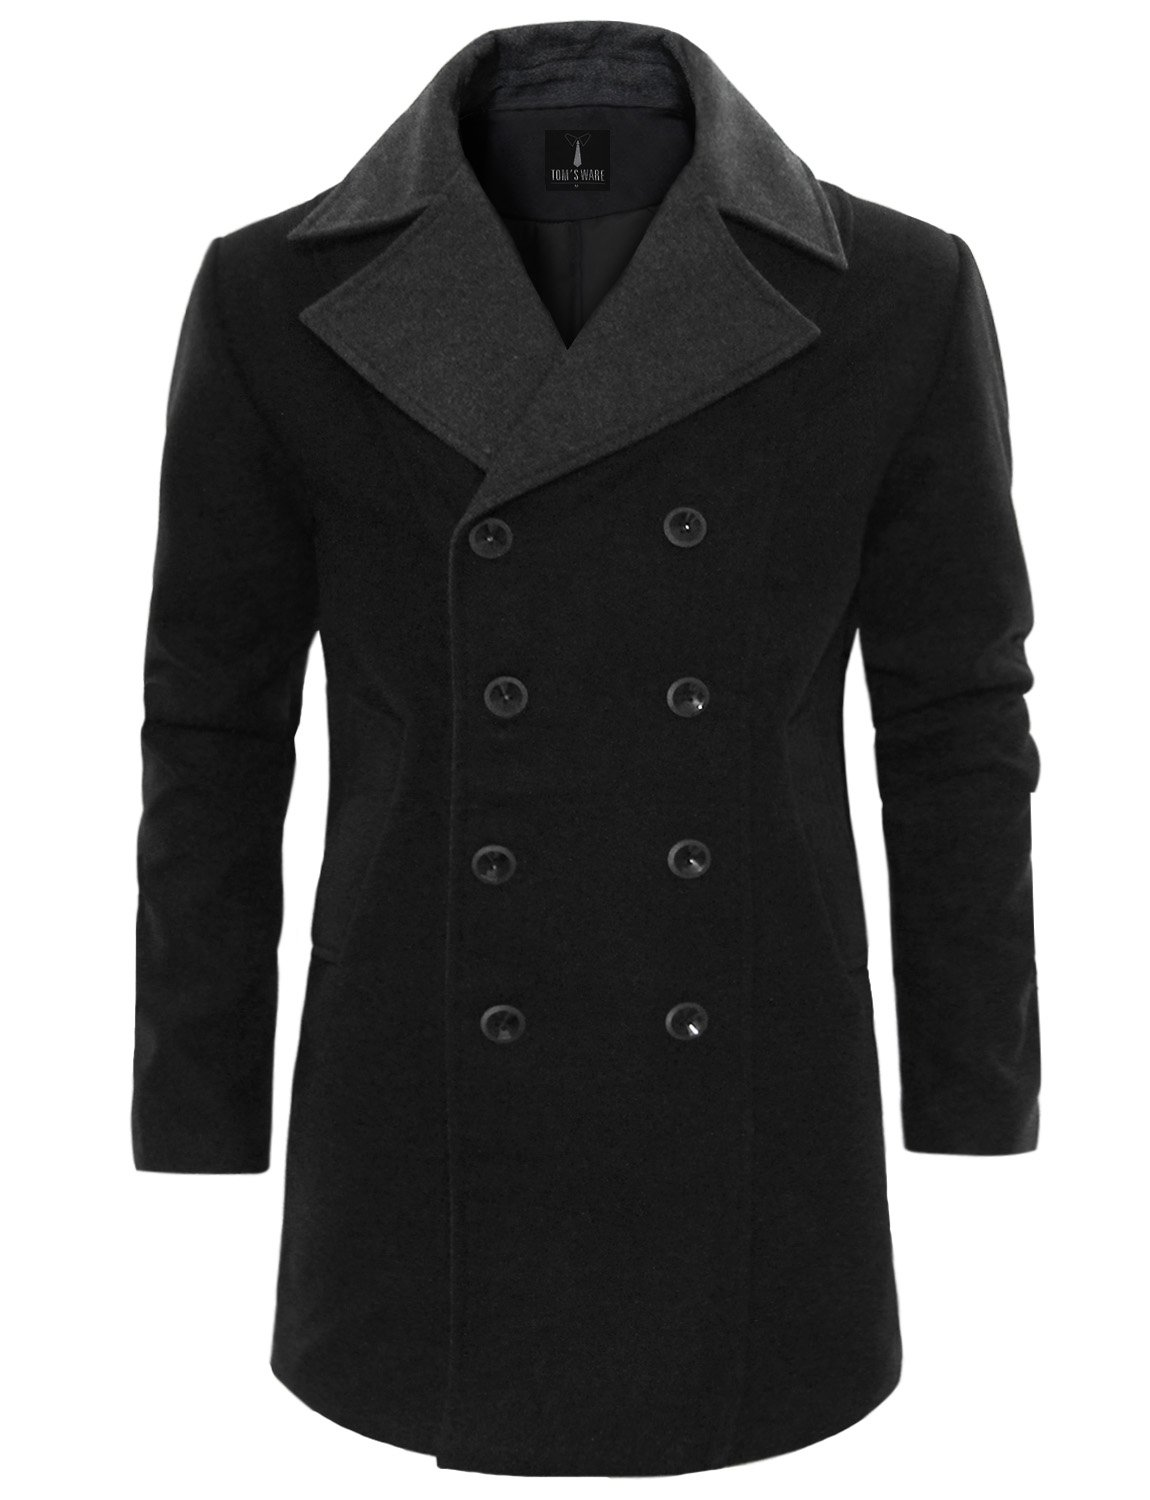 Tom's Ware Men's Trendy Double Breasted Trench Coat TWCC12-BLACK-US M by Tom's Ware